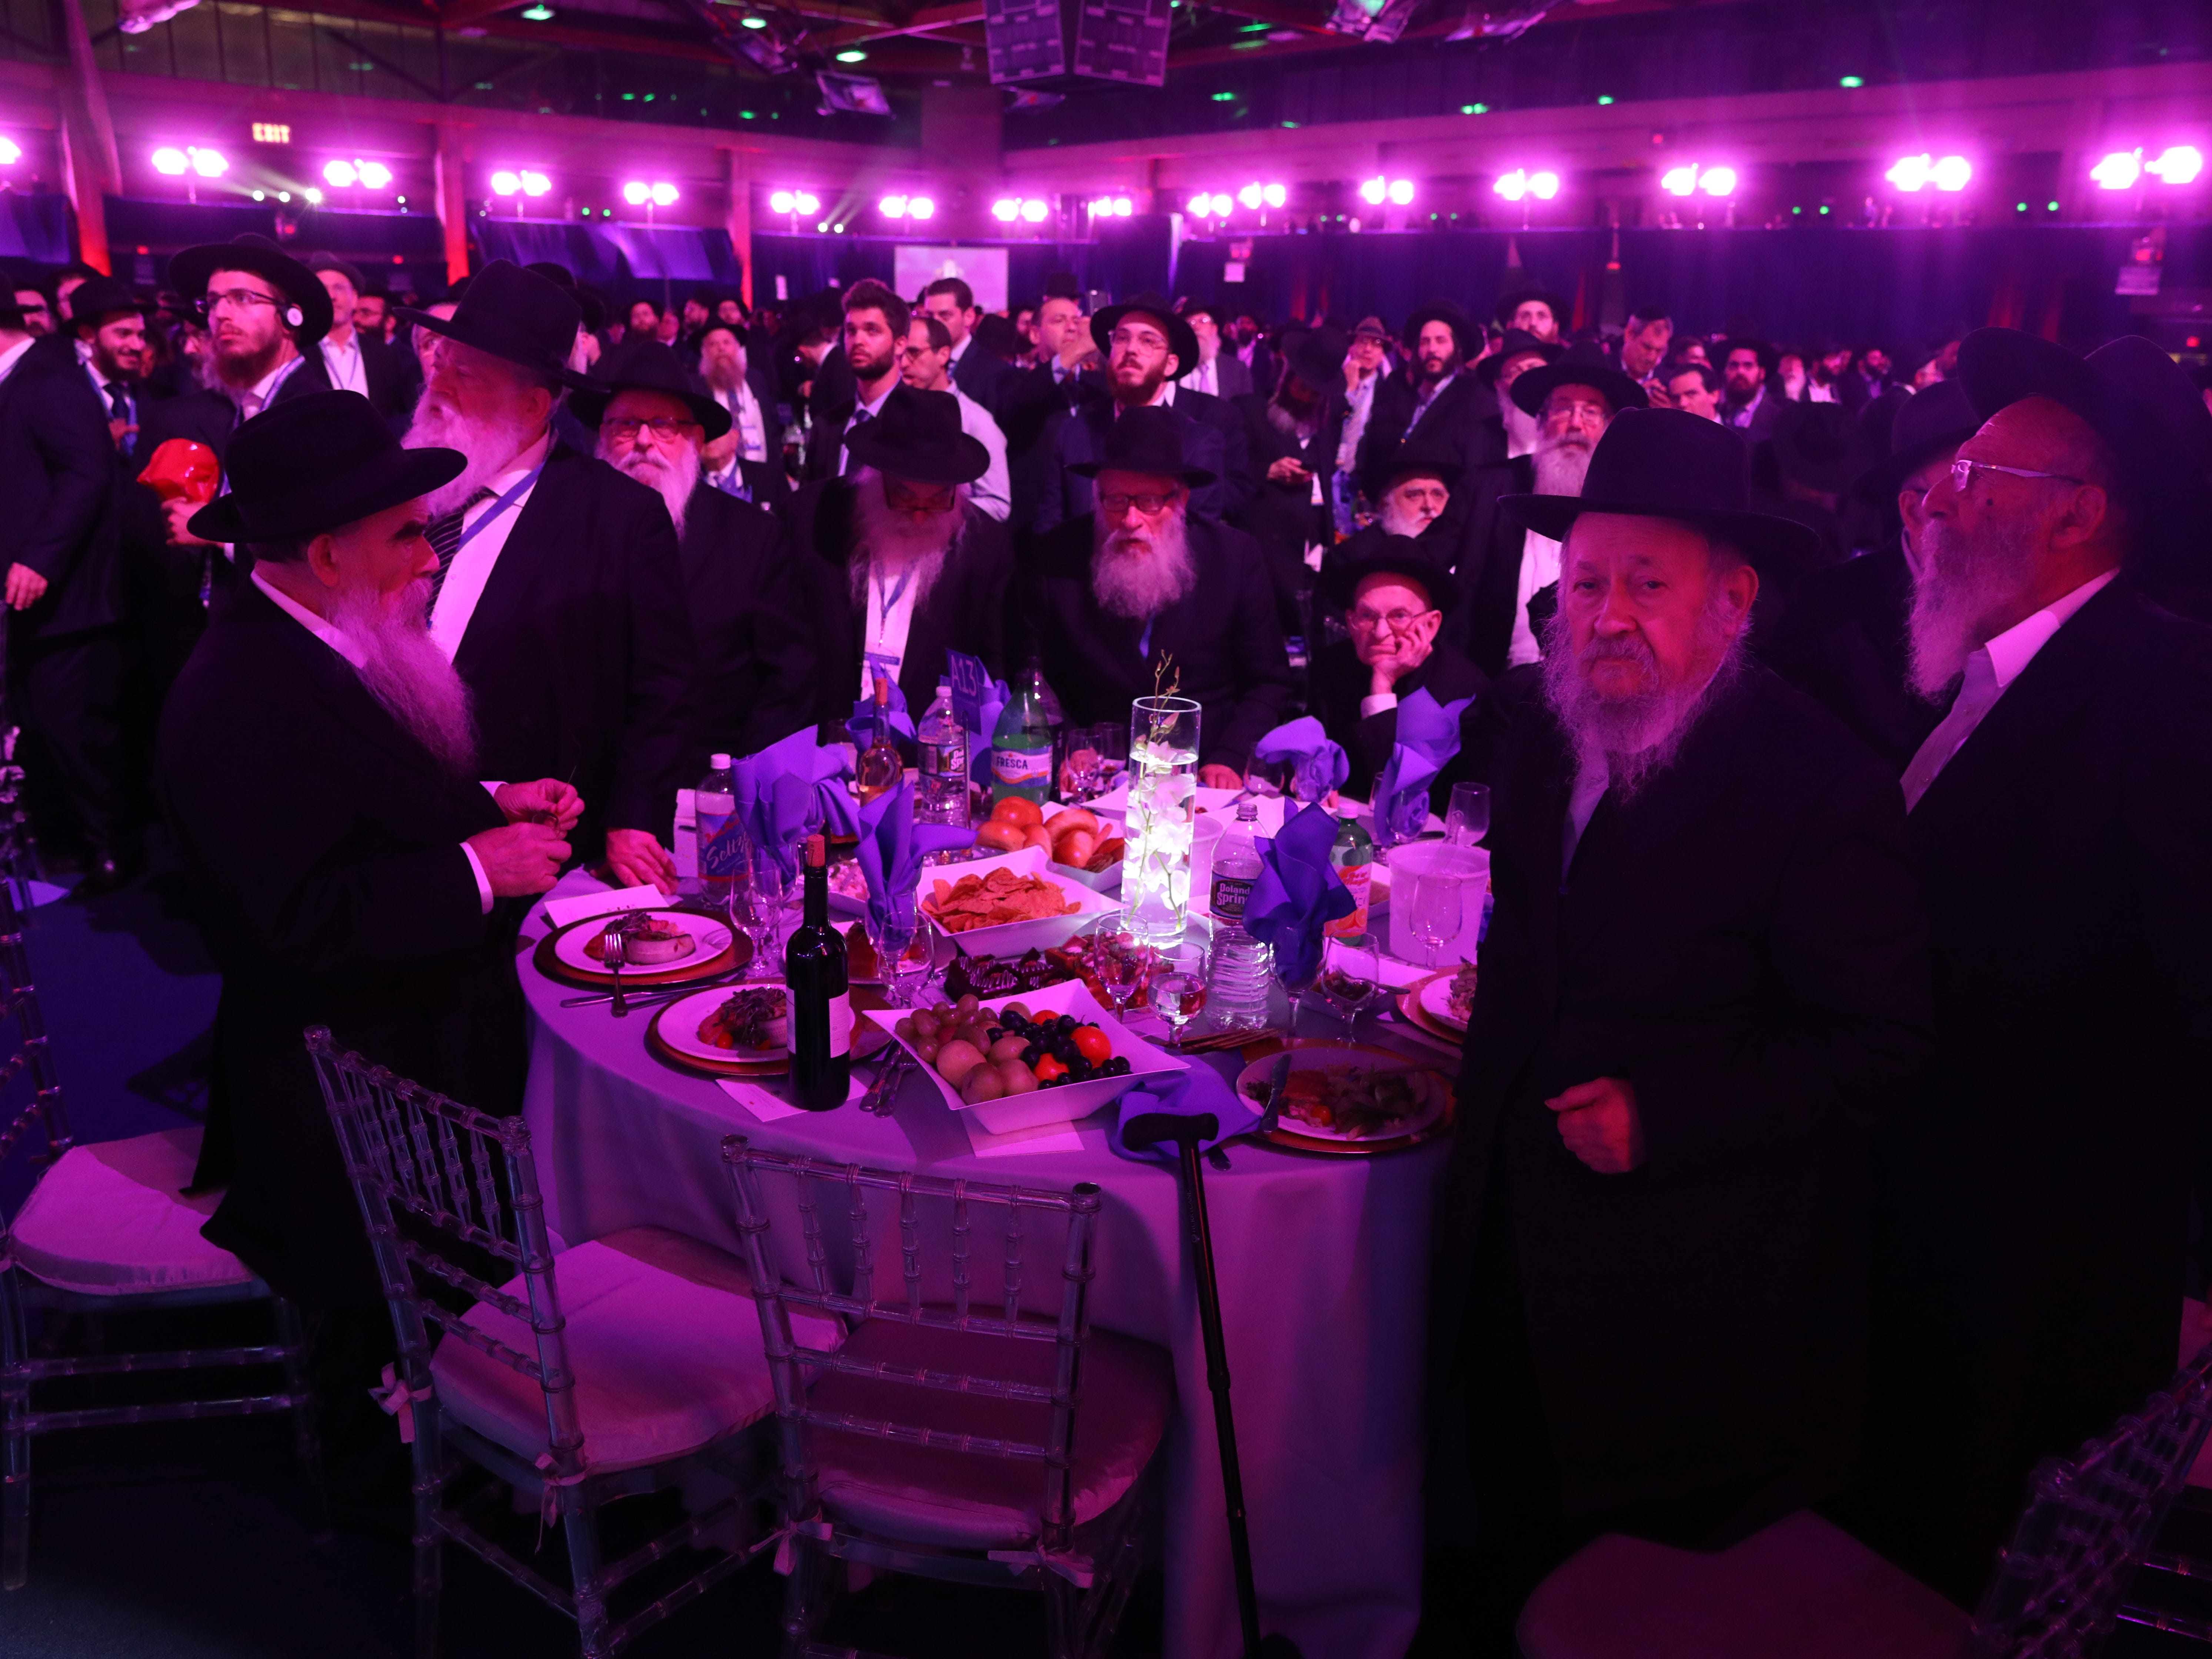 Rabbis attend a banquet at Rockland Community College on Sunday in Suffern. They are among 5,600 rabbis and guests from 100 countries in New York for the International Conference of Chabad-Lubavitch Emissaries, an annual event aimed at strengthening Jewish awareness and practice around the world. This year's gathering comes a week after the anti-Semitic shooting in Pittsburgh, which was a focal point of the conference.